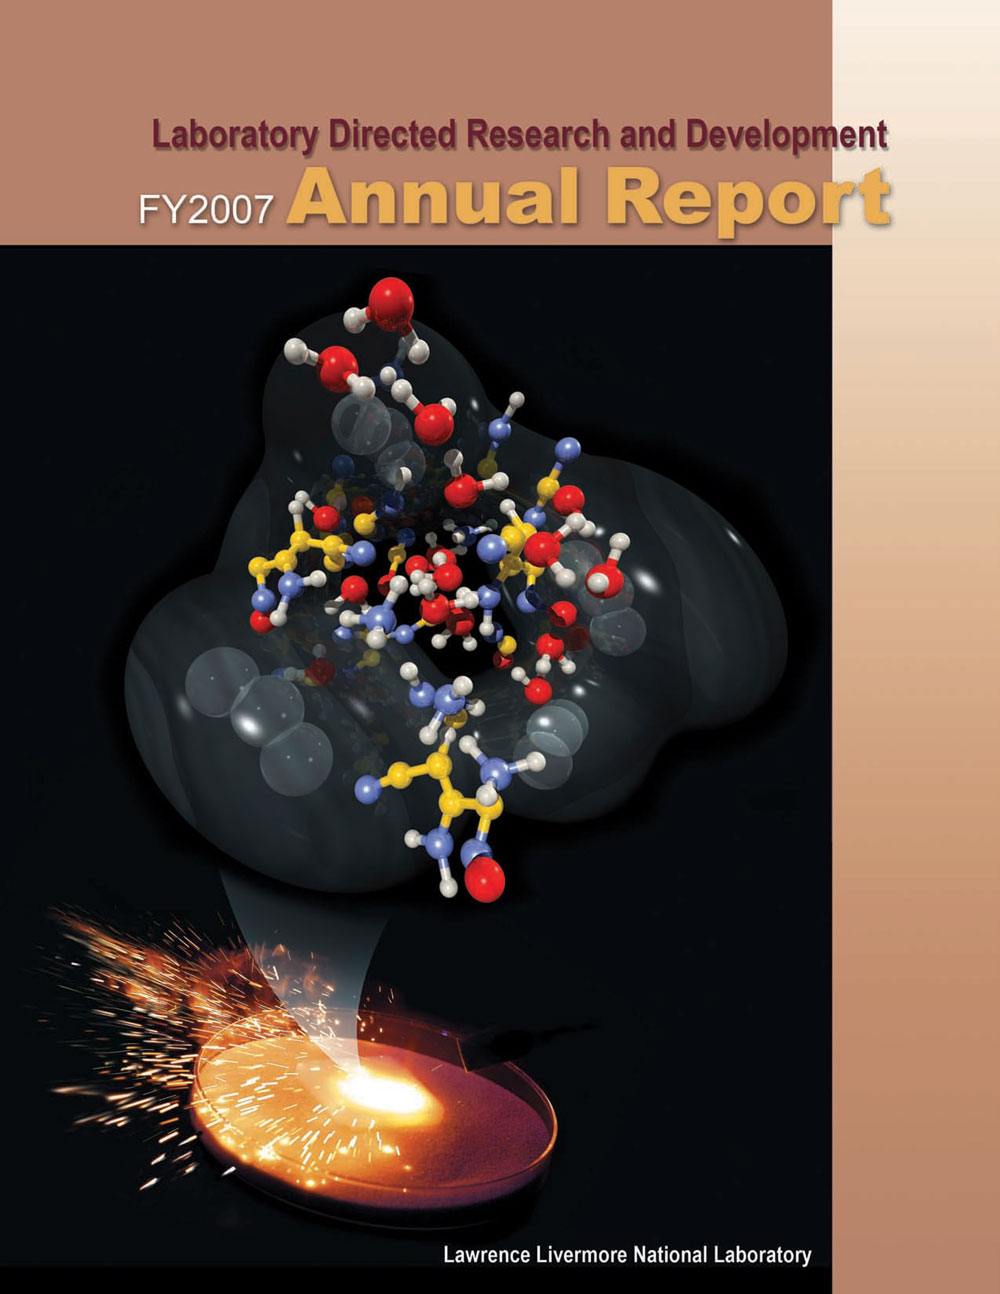 CoverofLLNLFY2007LDRD-AnnualReport